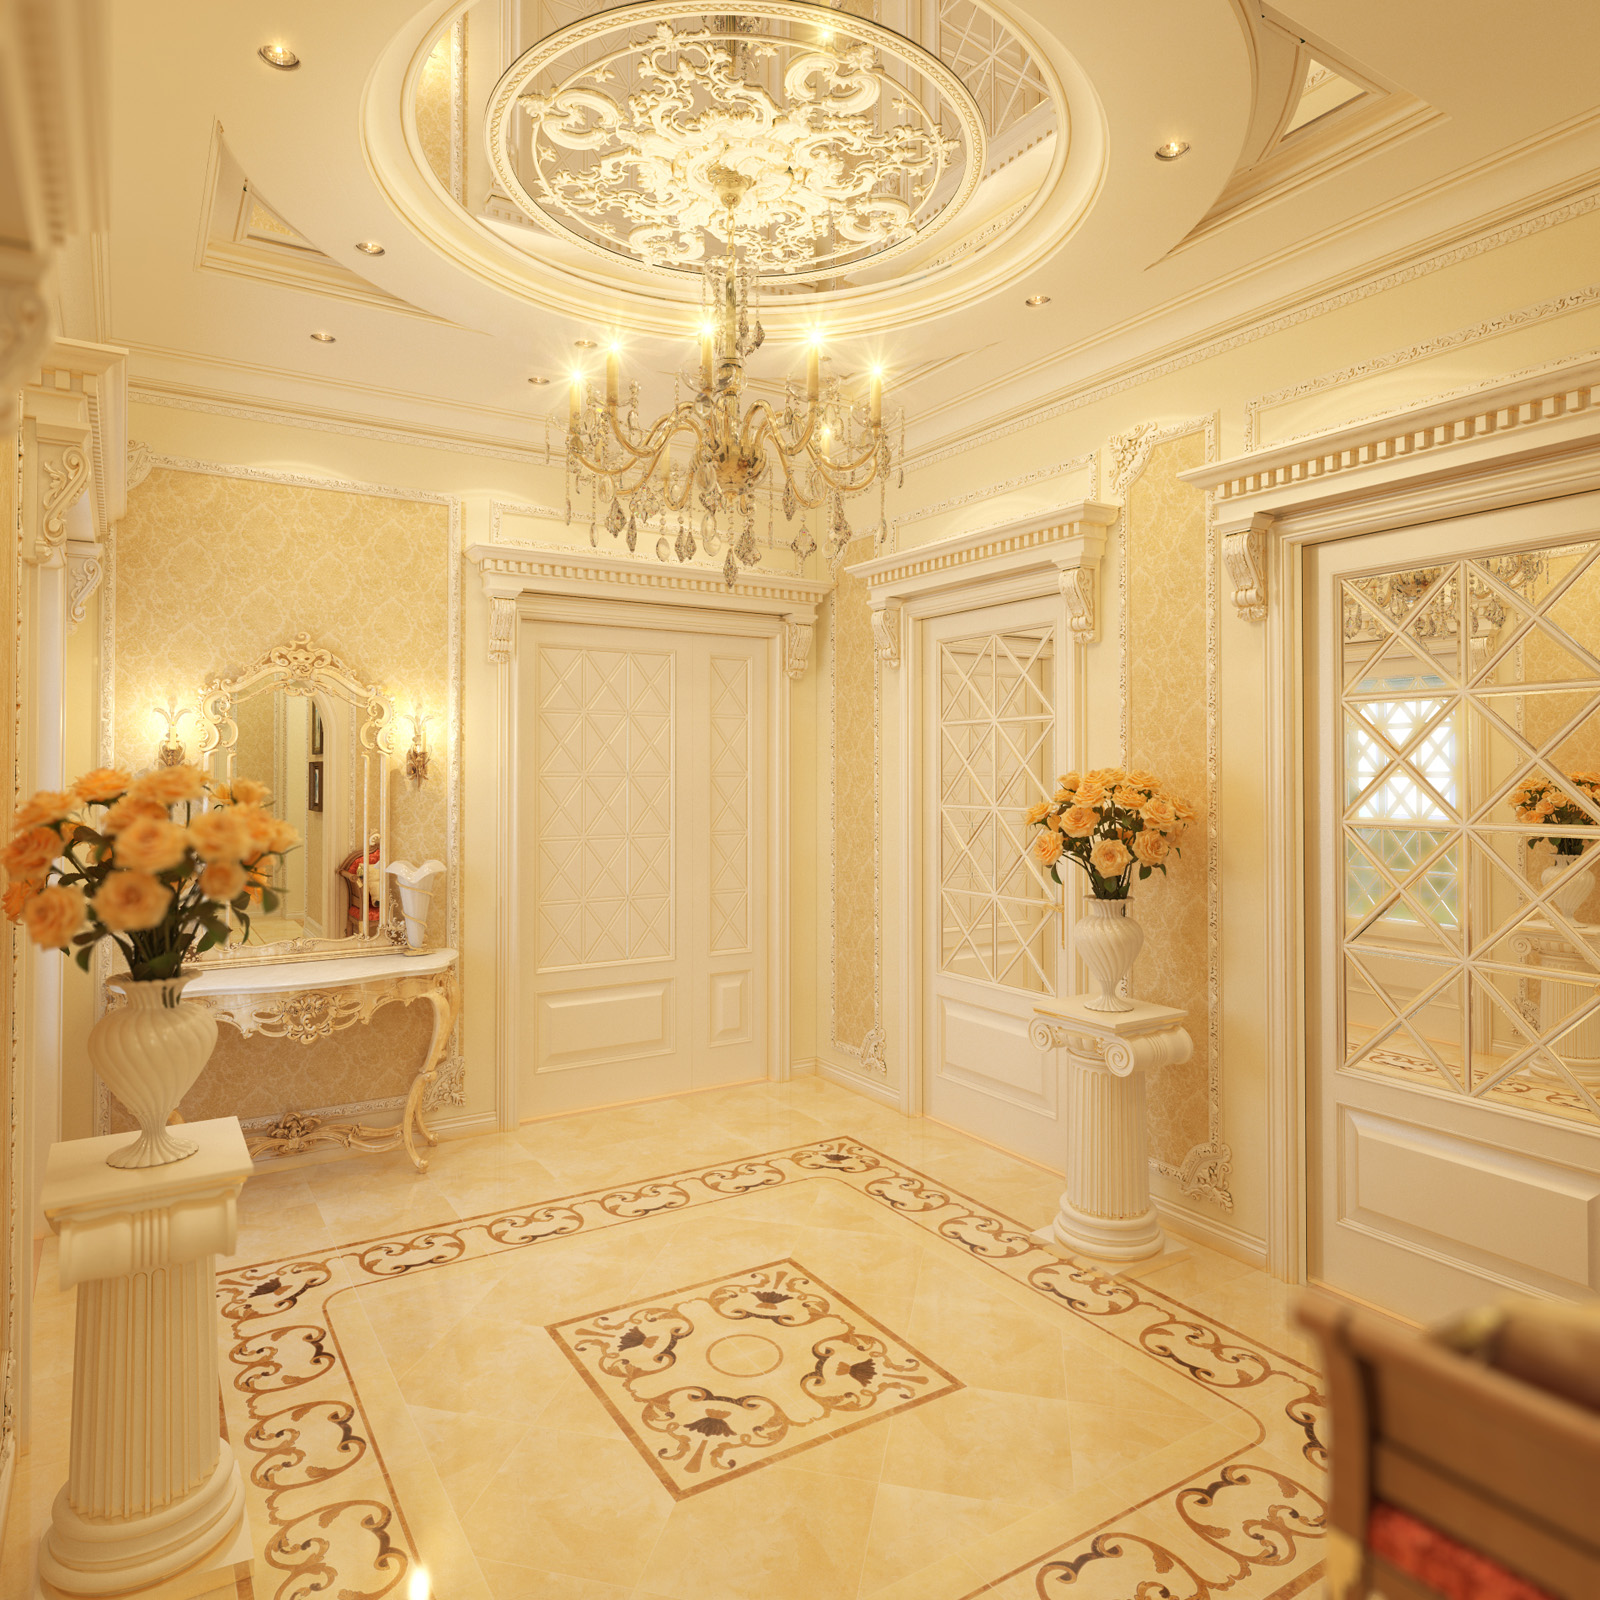 Decorative Room: Royal Home Designs !